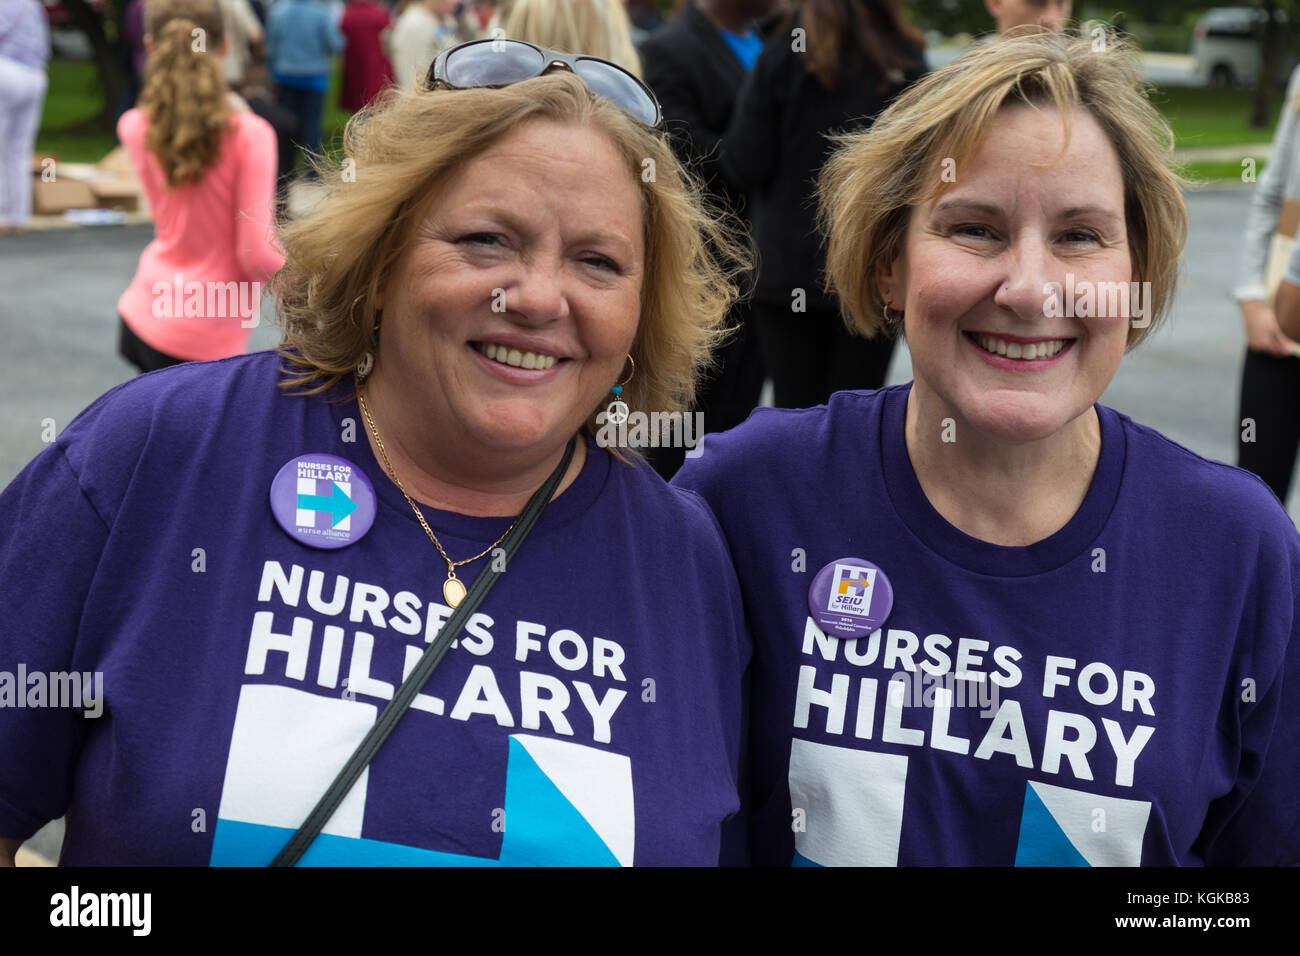 Harrisburg, PA, USA - October 4, 2016: Nurses for Hillary at the rally for Presidential candidate Hillary Clinton. - Stock Image